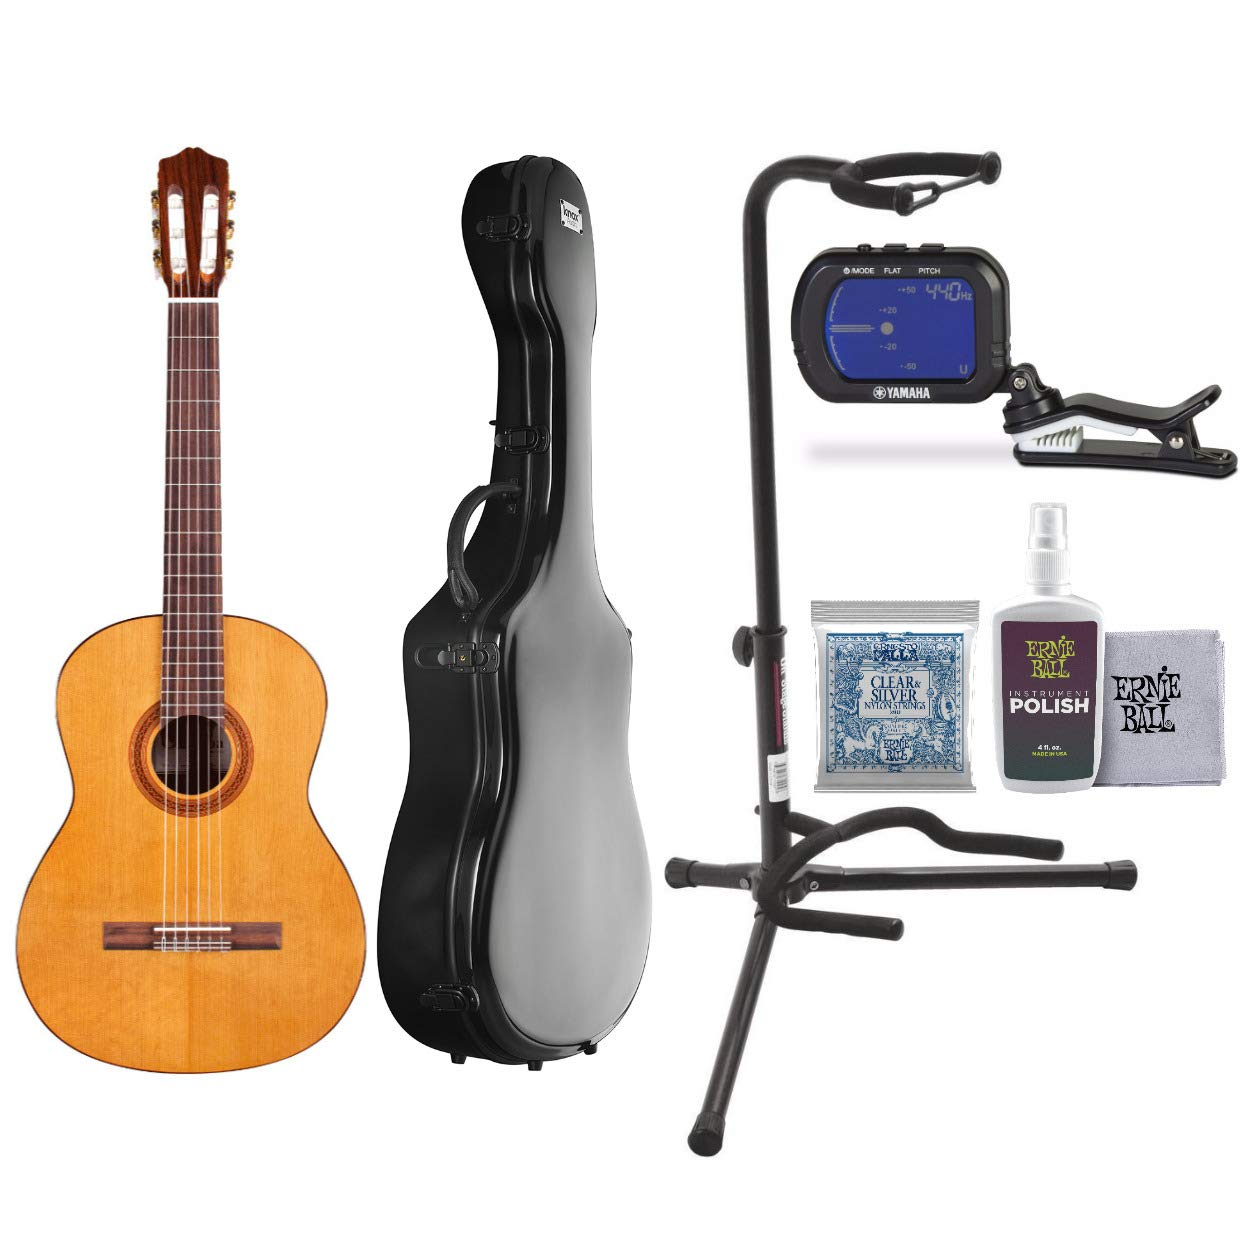 Cordoba C5 Classic Guitar with Knox Fiberglass Case, 3 sets of Extra Strings, Polish with Cloth, Guitar Stand and Tuner